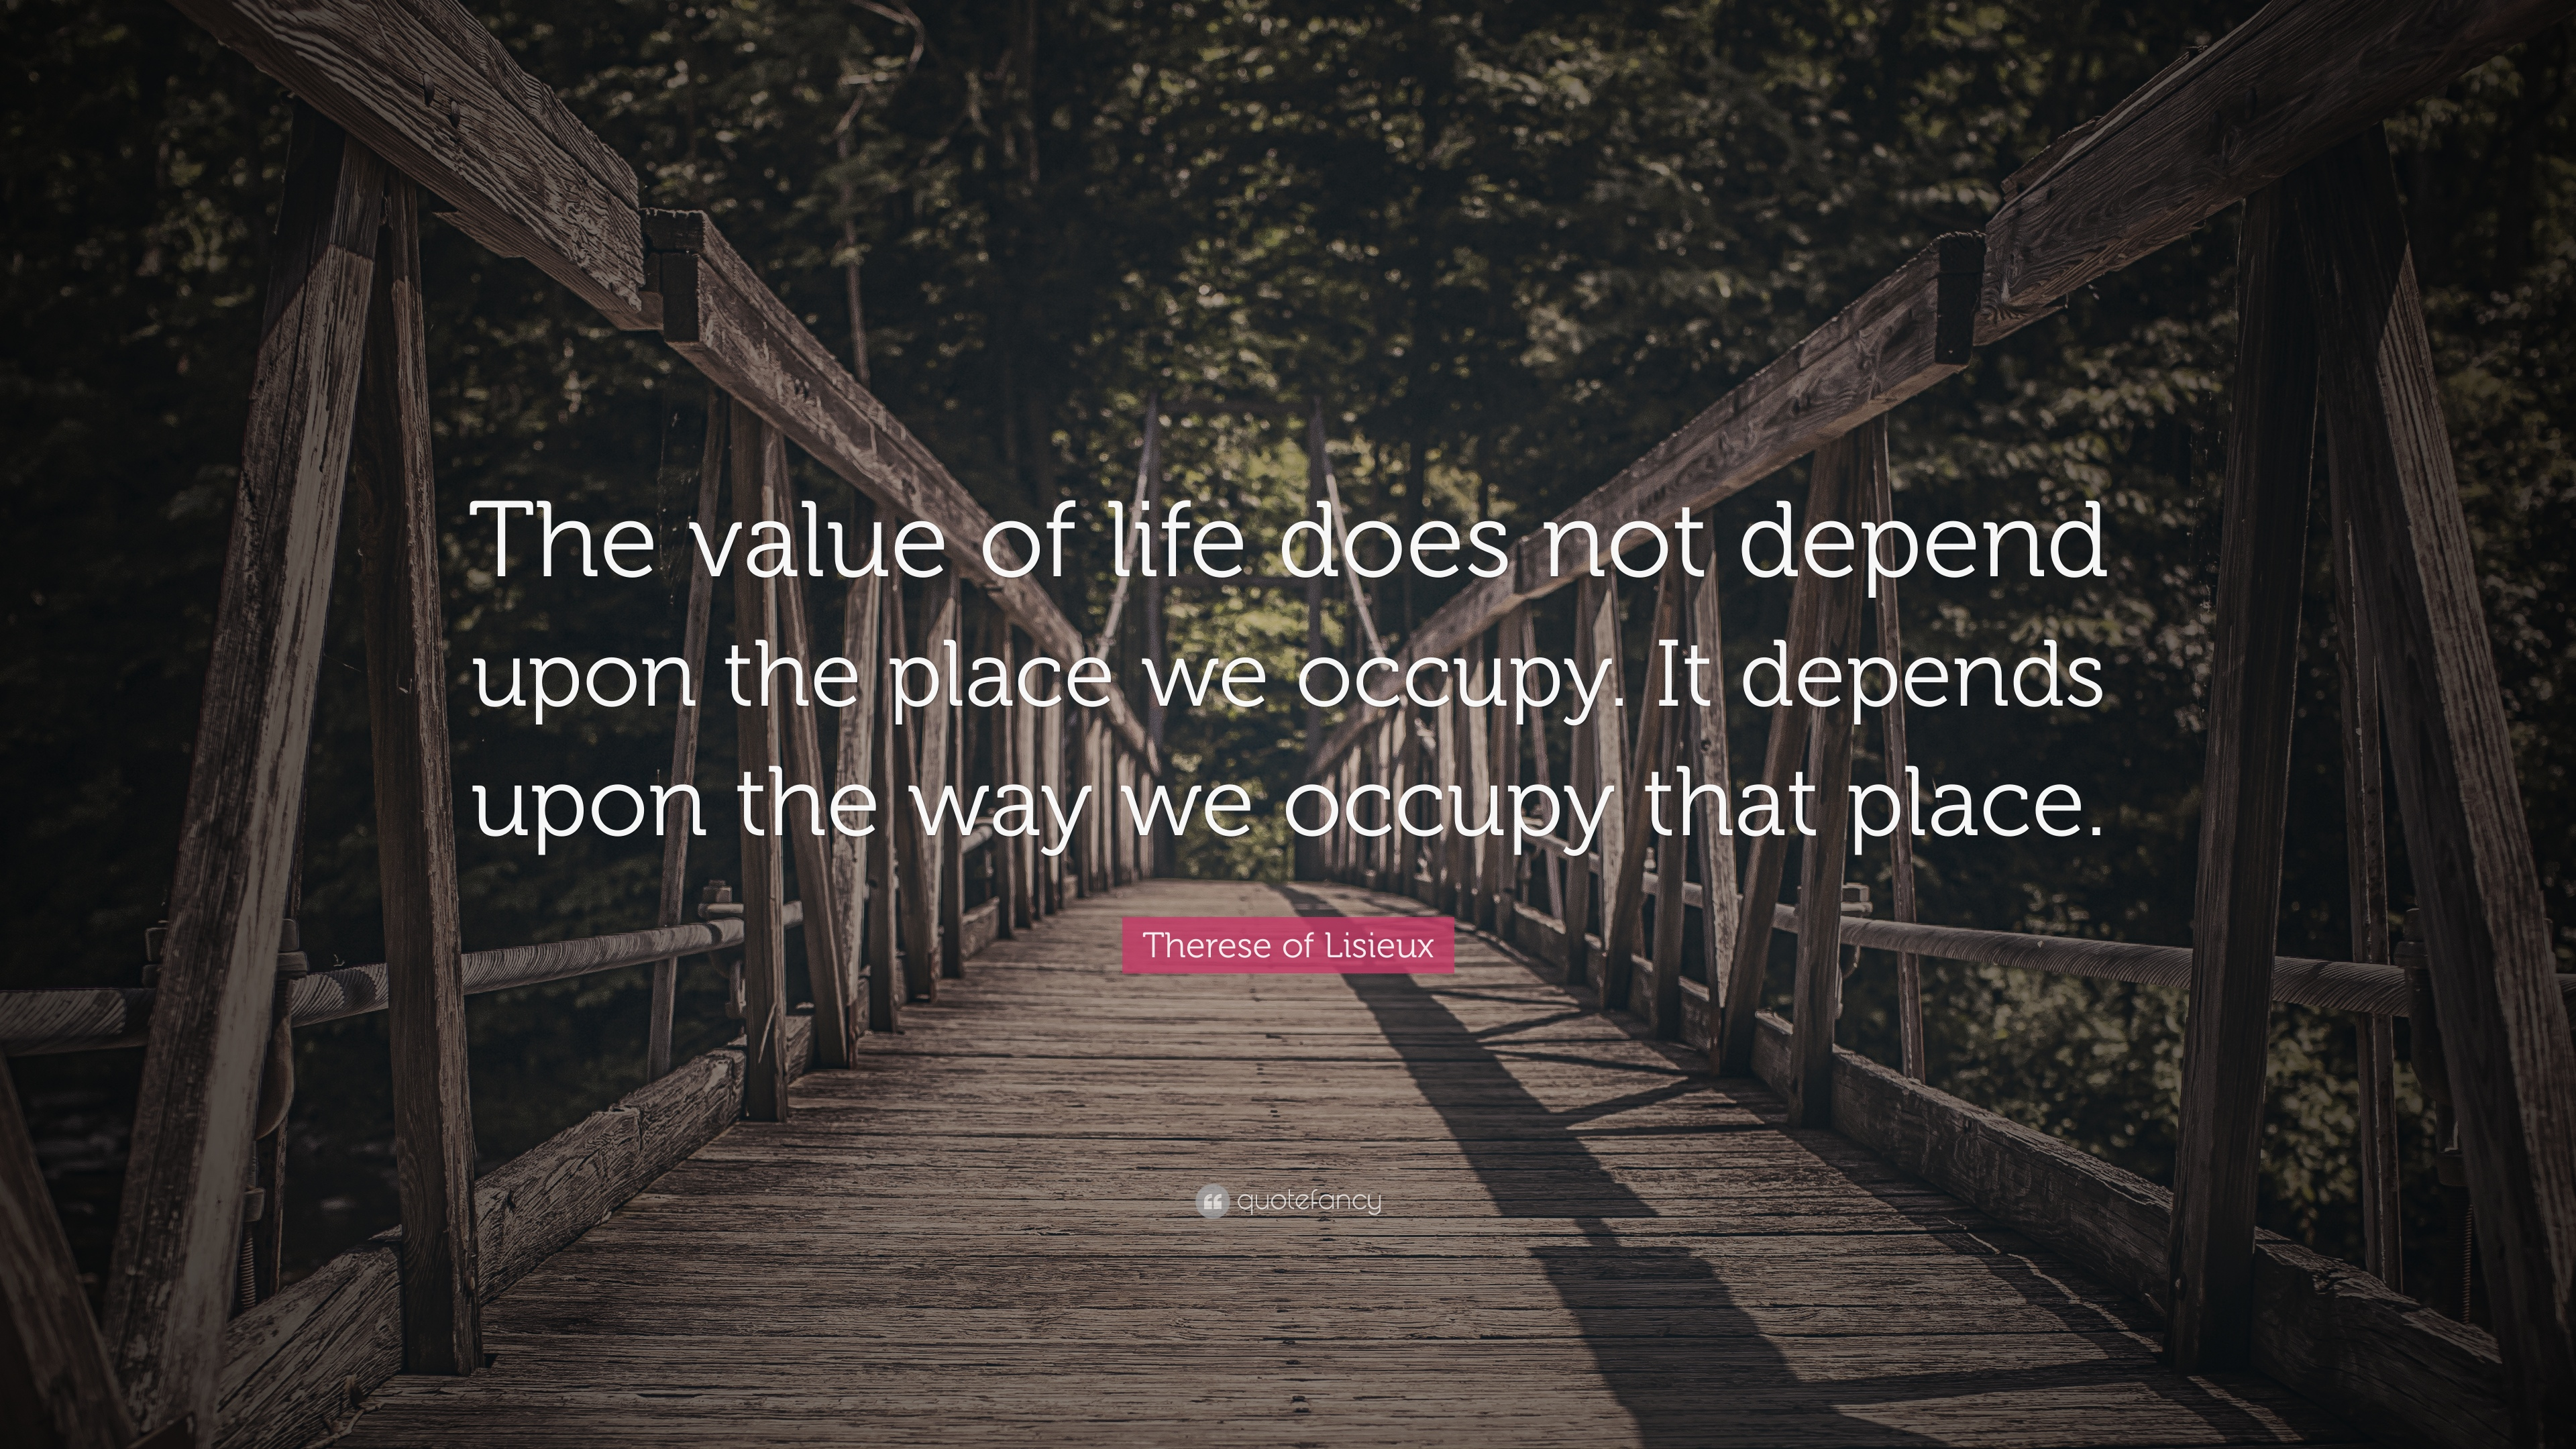 Does life have intrinsic value?